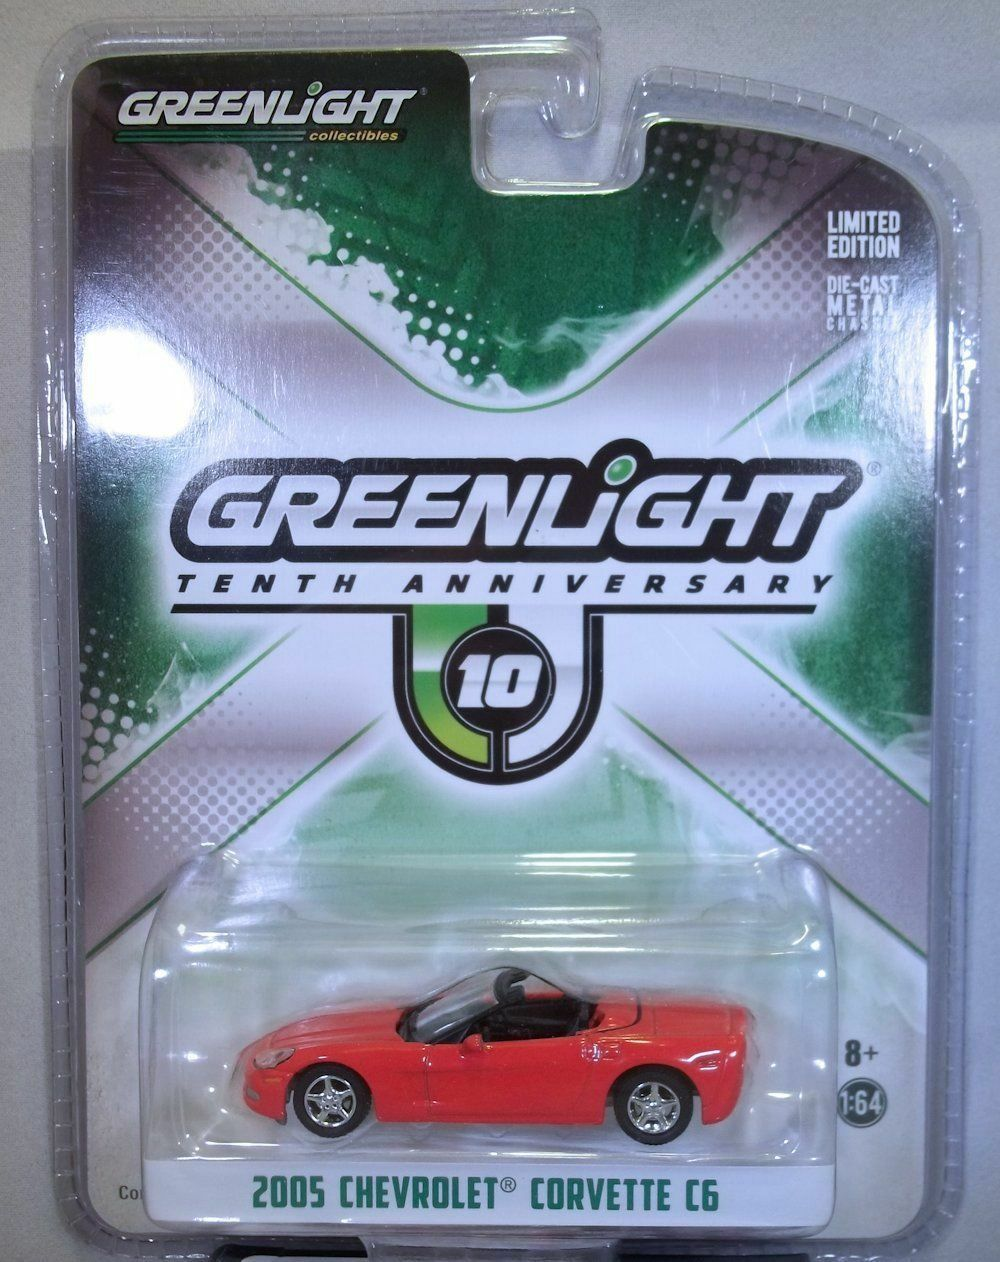 Greenlight Collectibles Greenlight 10th Anniversary Edition 2005 Chevy Corvette C6 Convertible 1:64 Scale Red